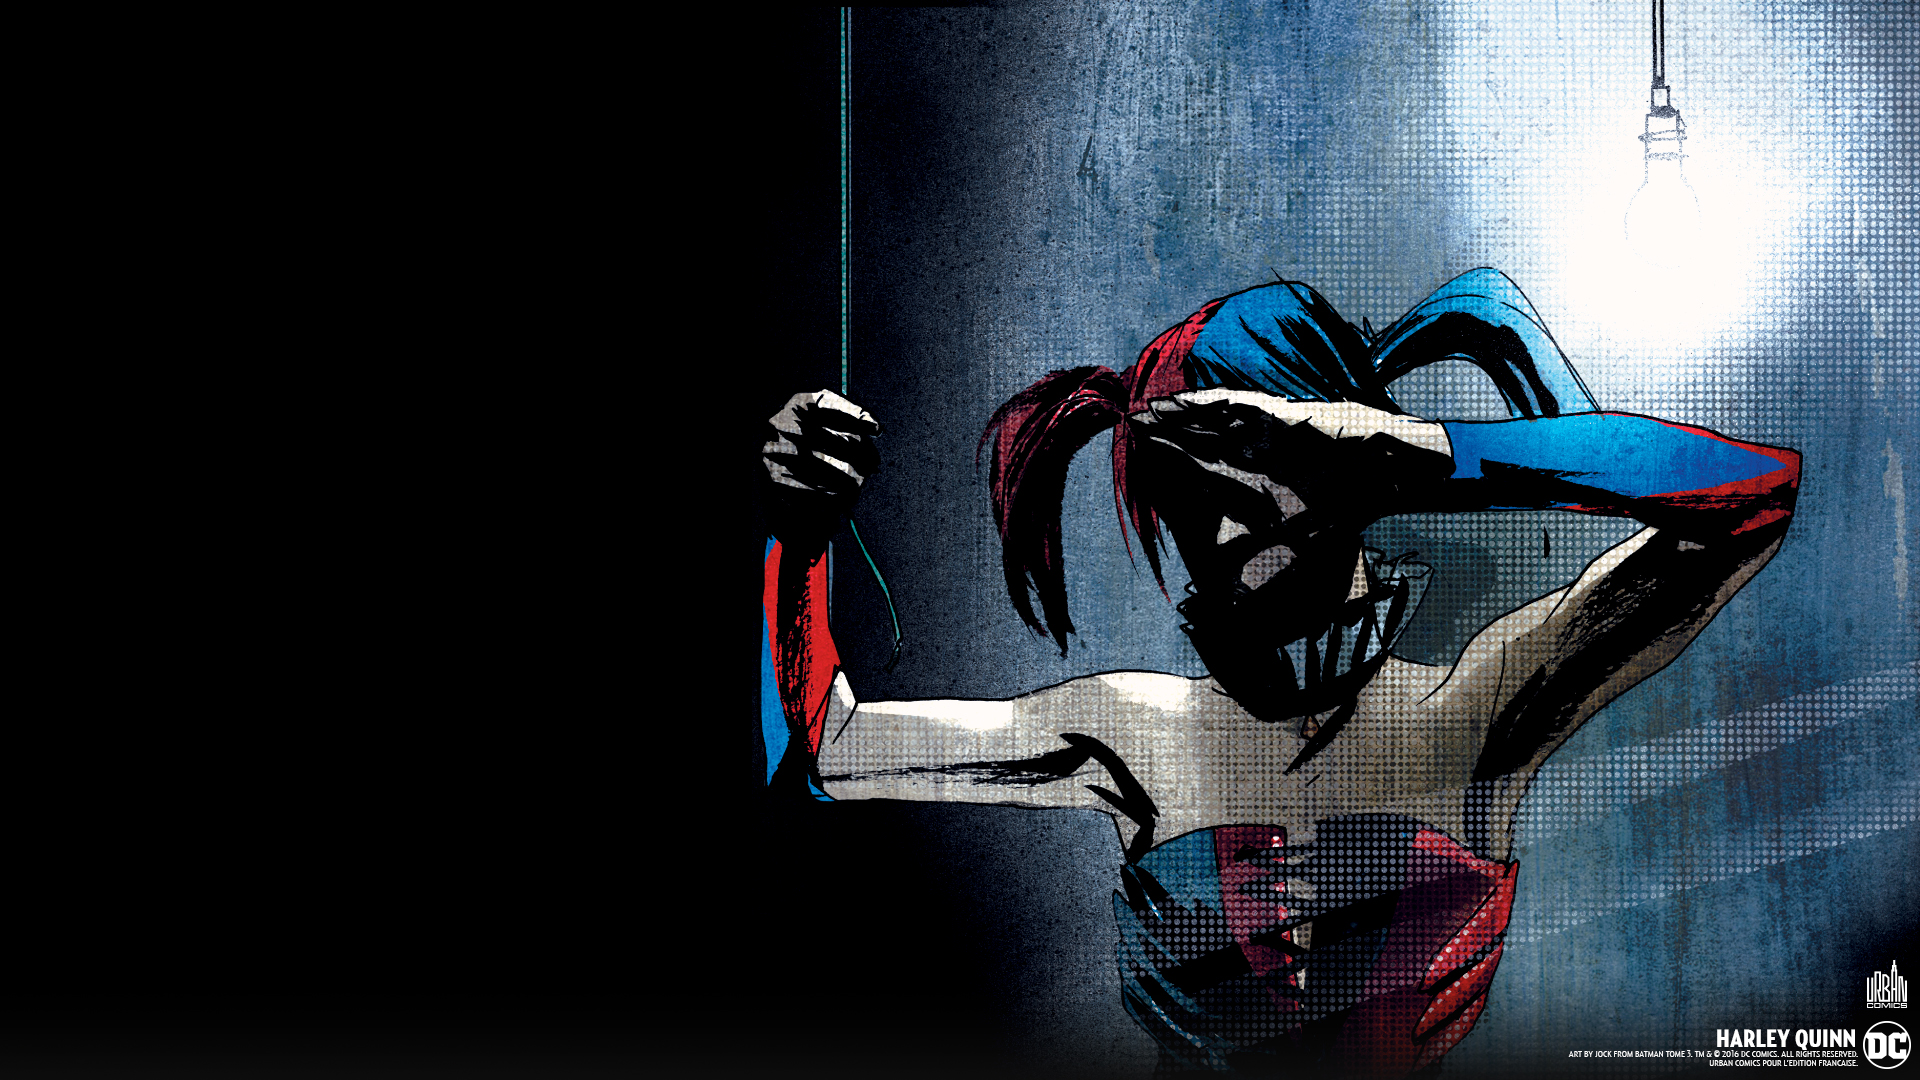 Wallpapers Special Harley Quinn